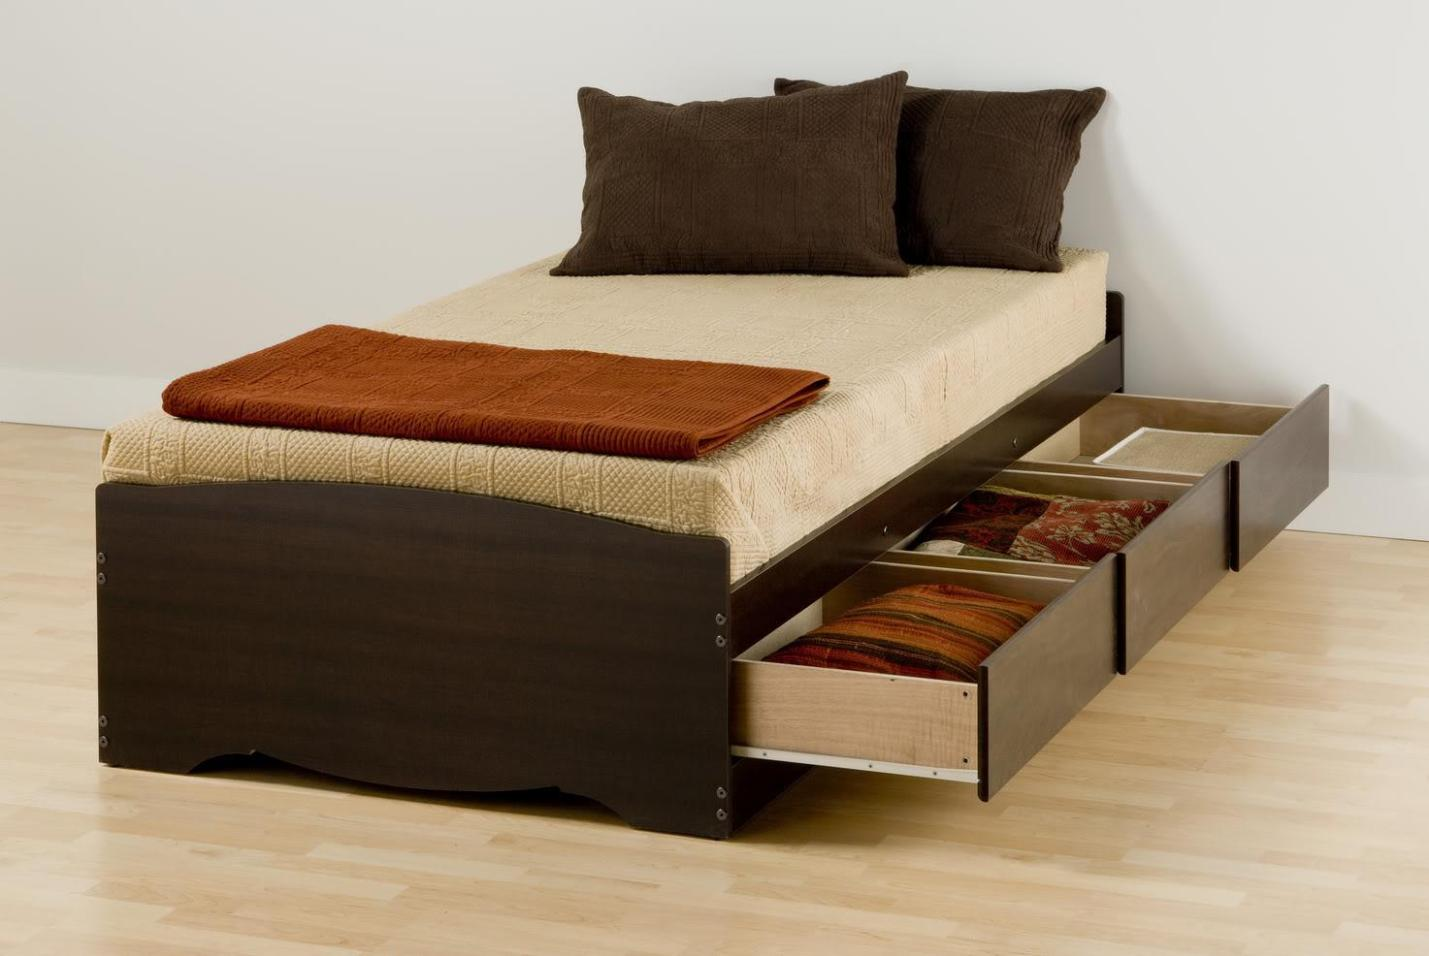 Image of: Queen Bed Frame With Drawers Plans